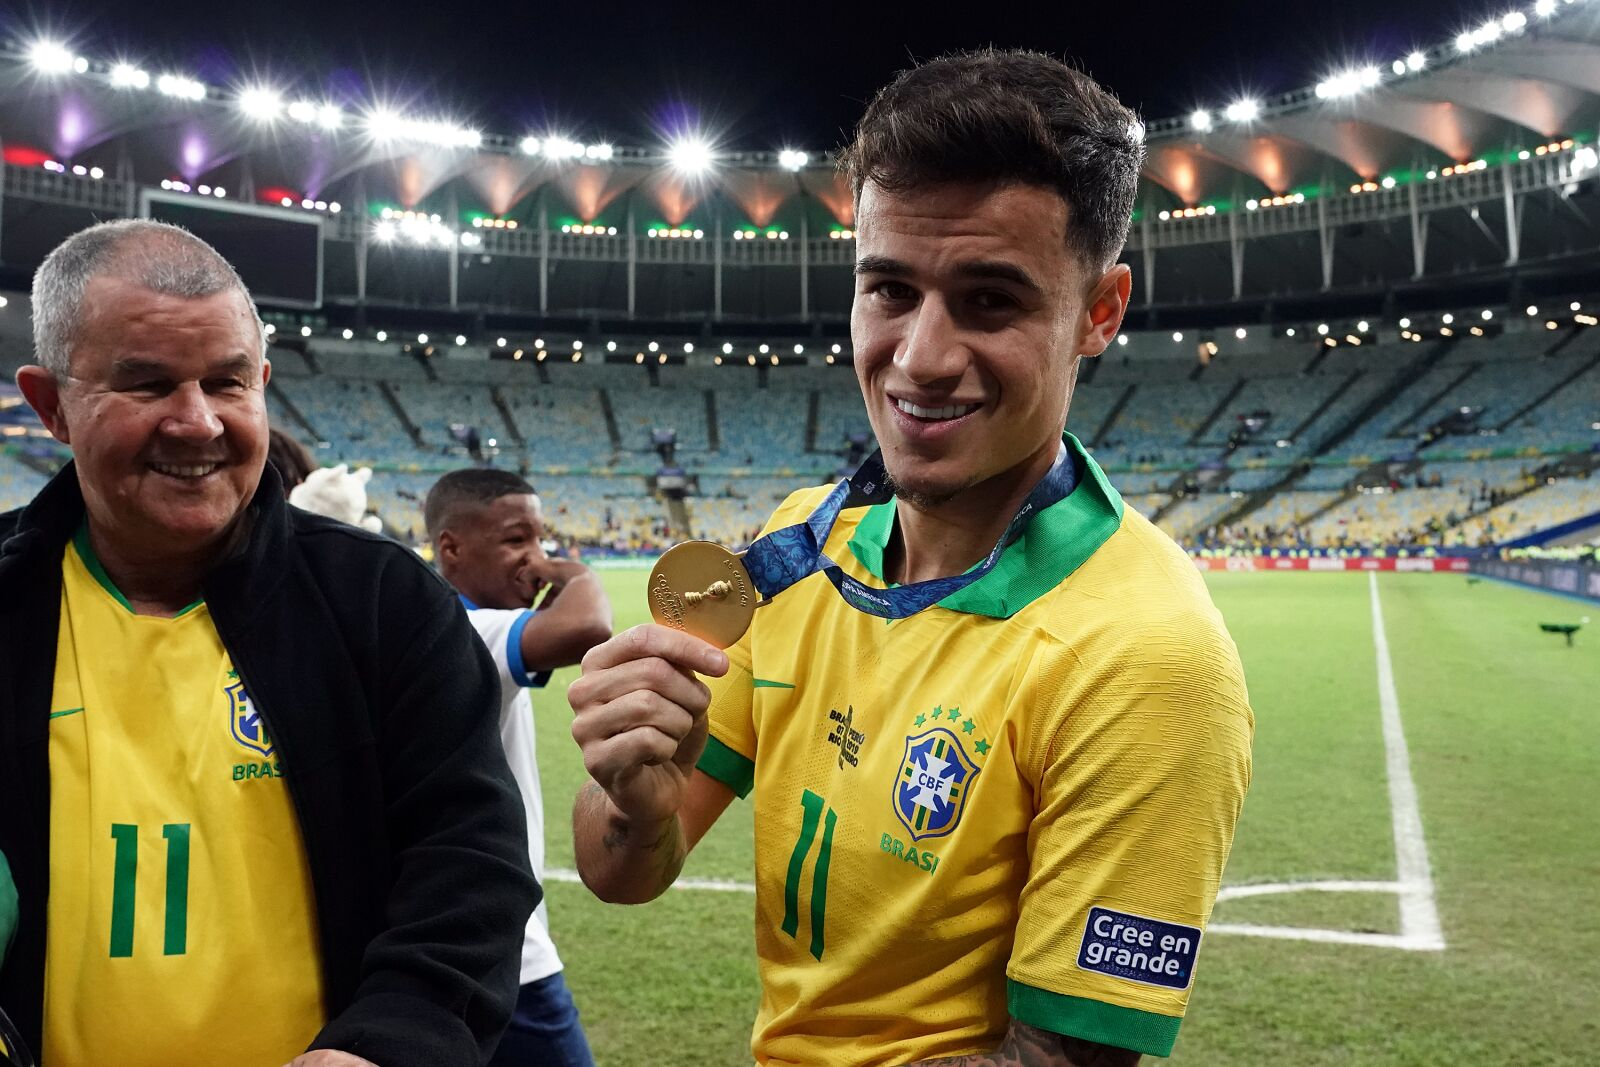 Philippe Coutinho is exactly the player Bayern needs